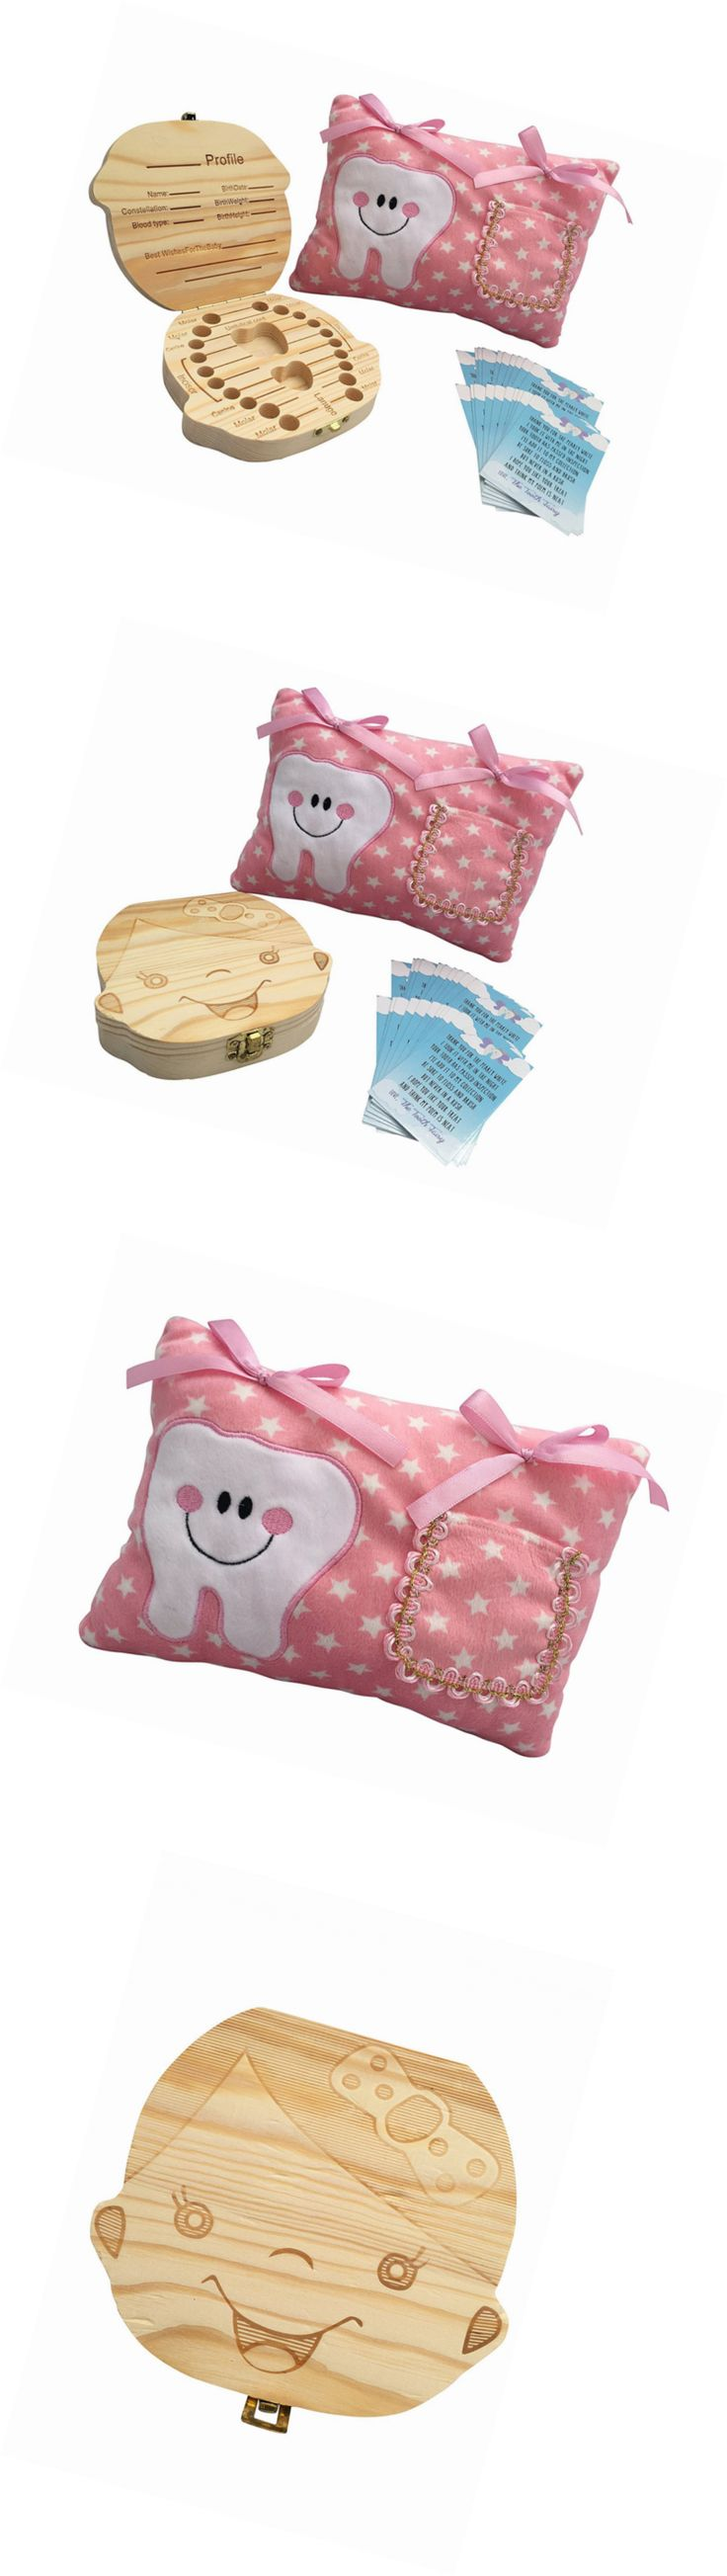 Tooth Fairy Pillows 162038: Girl Tooth Fairy Kit - Tooth Fairy Pillow Girl - Tooth Fairy Box - Tooth Fairy L -> BUY IT NOW ONLY: $33.55 on eBay!